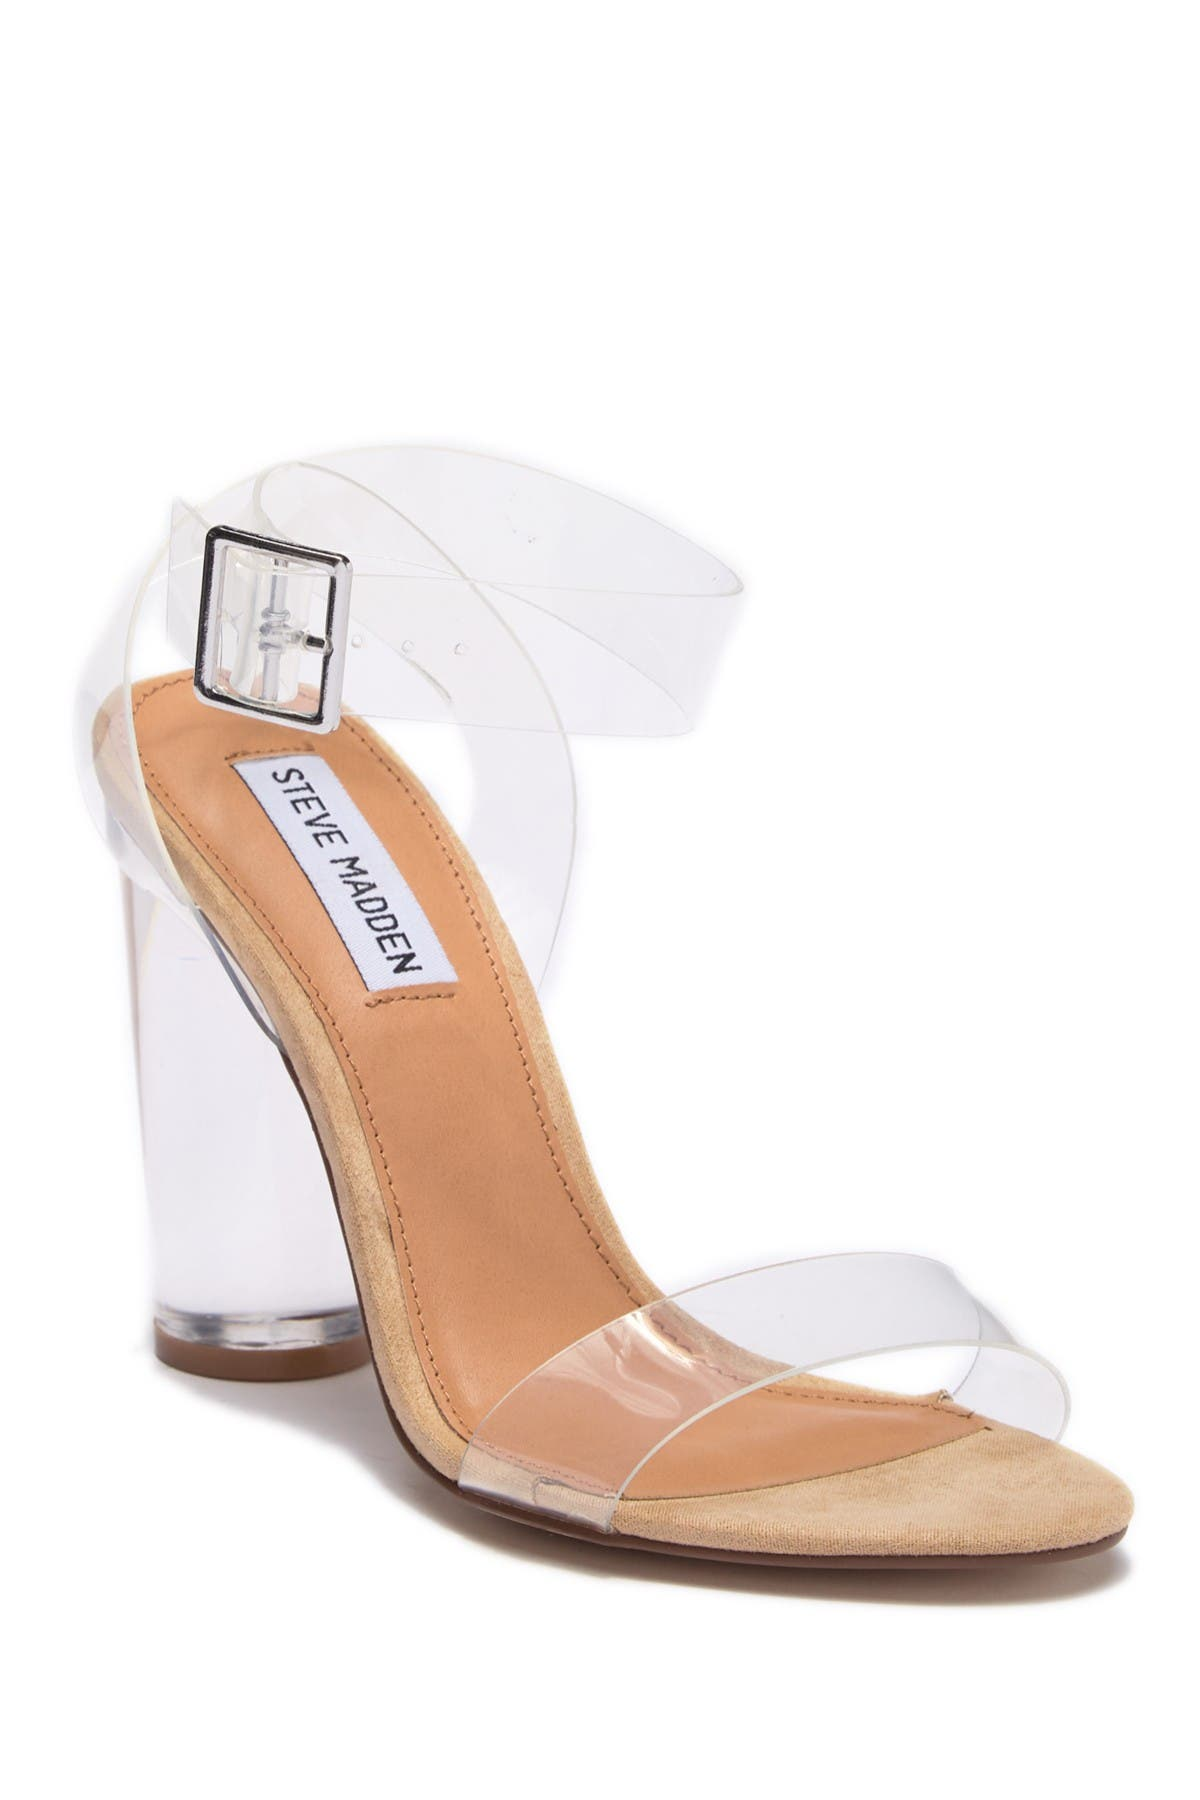 Image of Steve Madden Clear Heeled Sandal